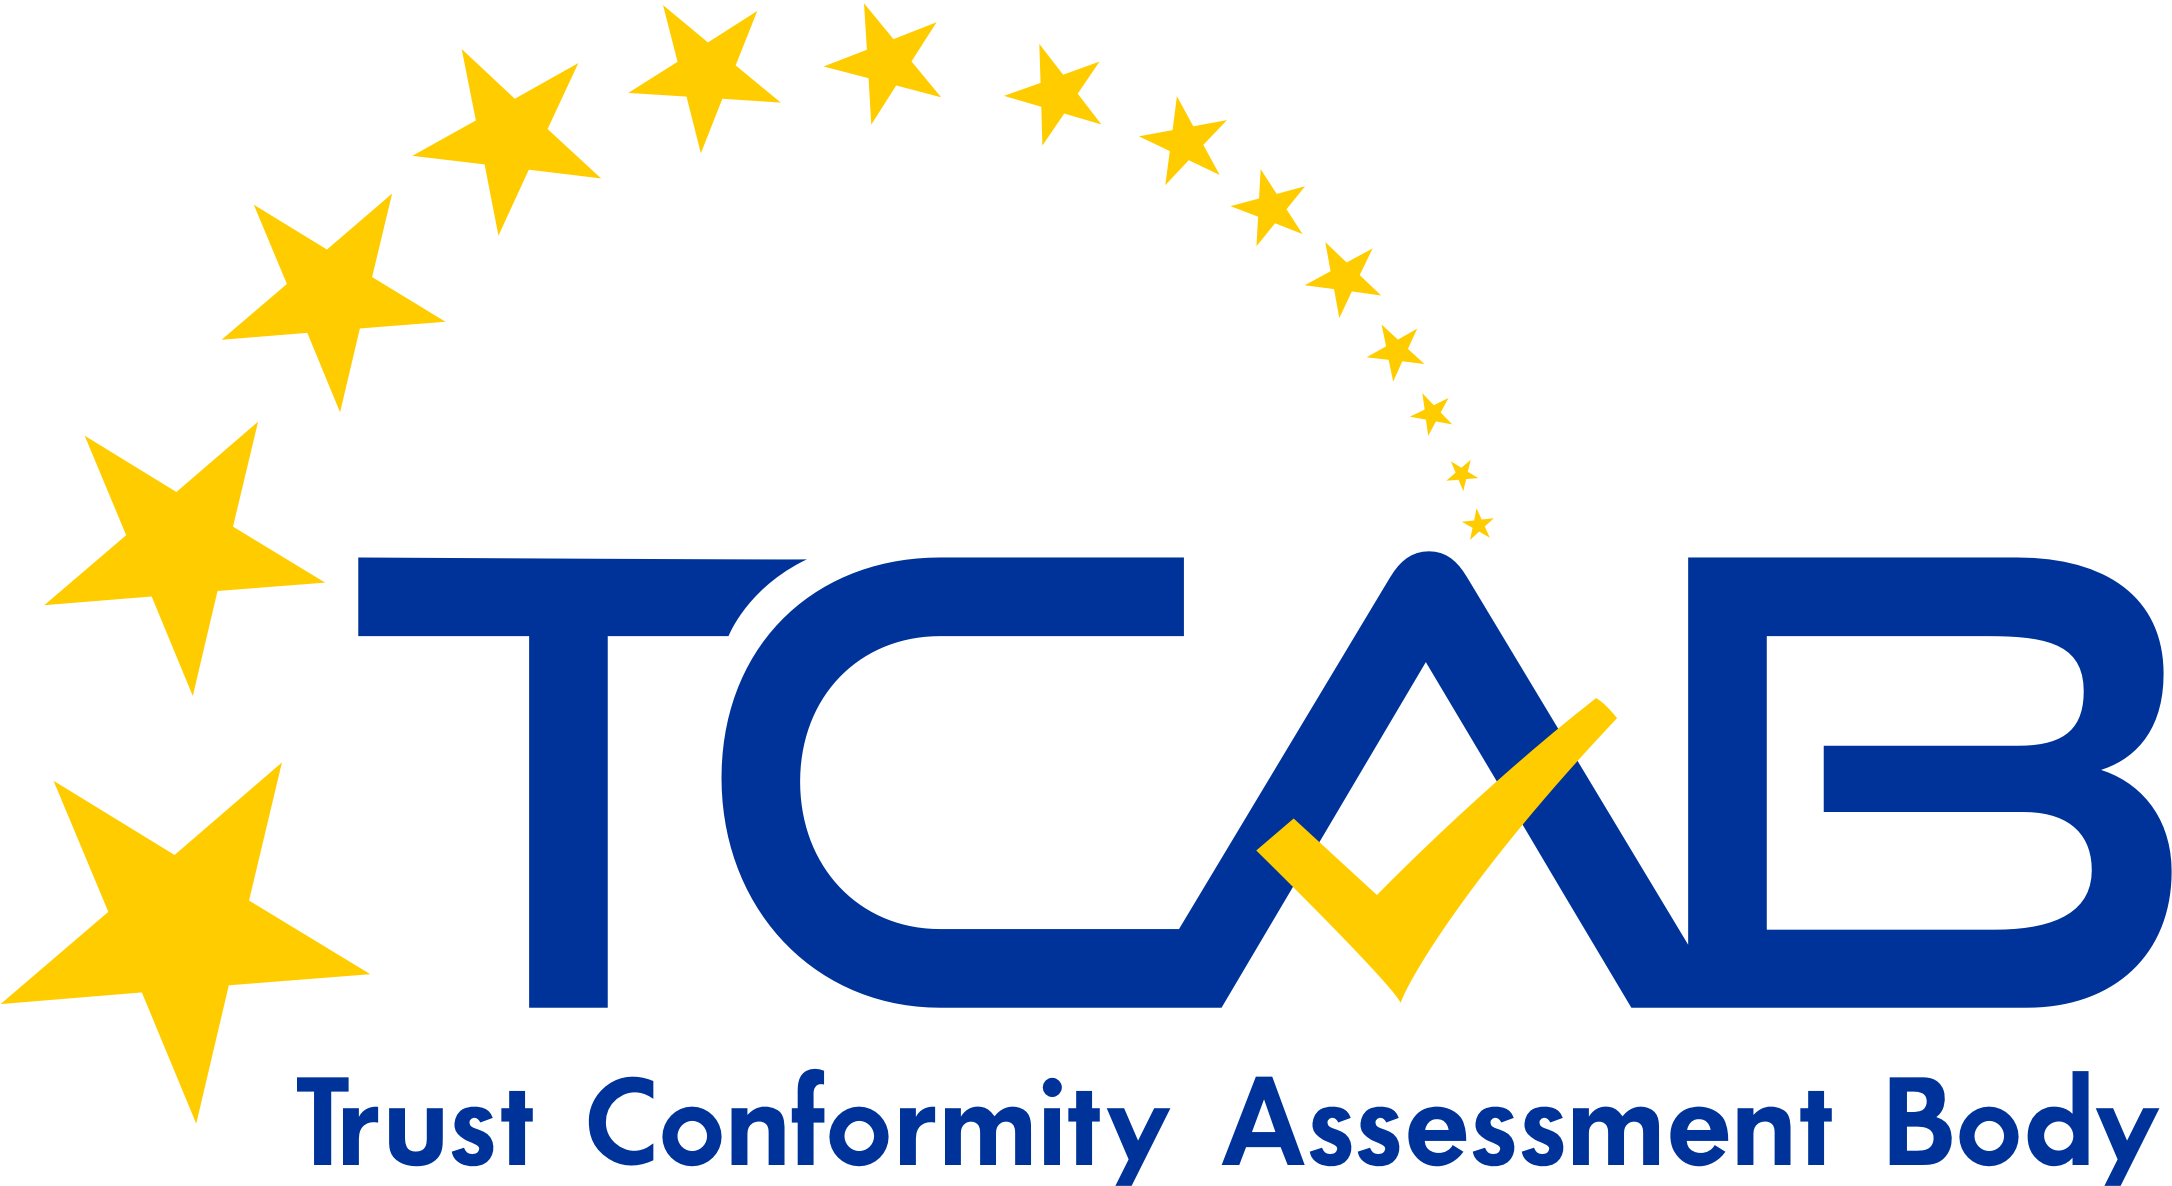 tcab-logo-trust-conformity-assessment-body-big